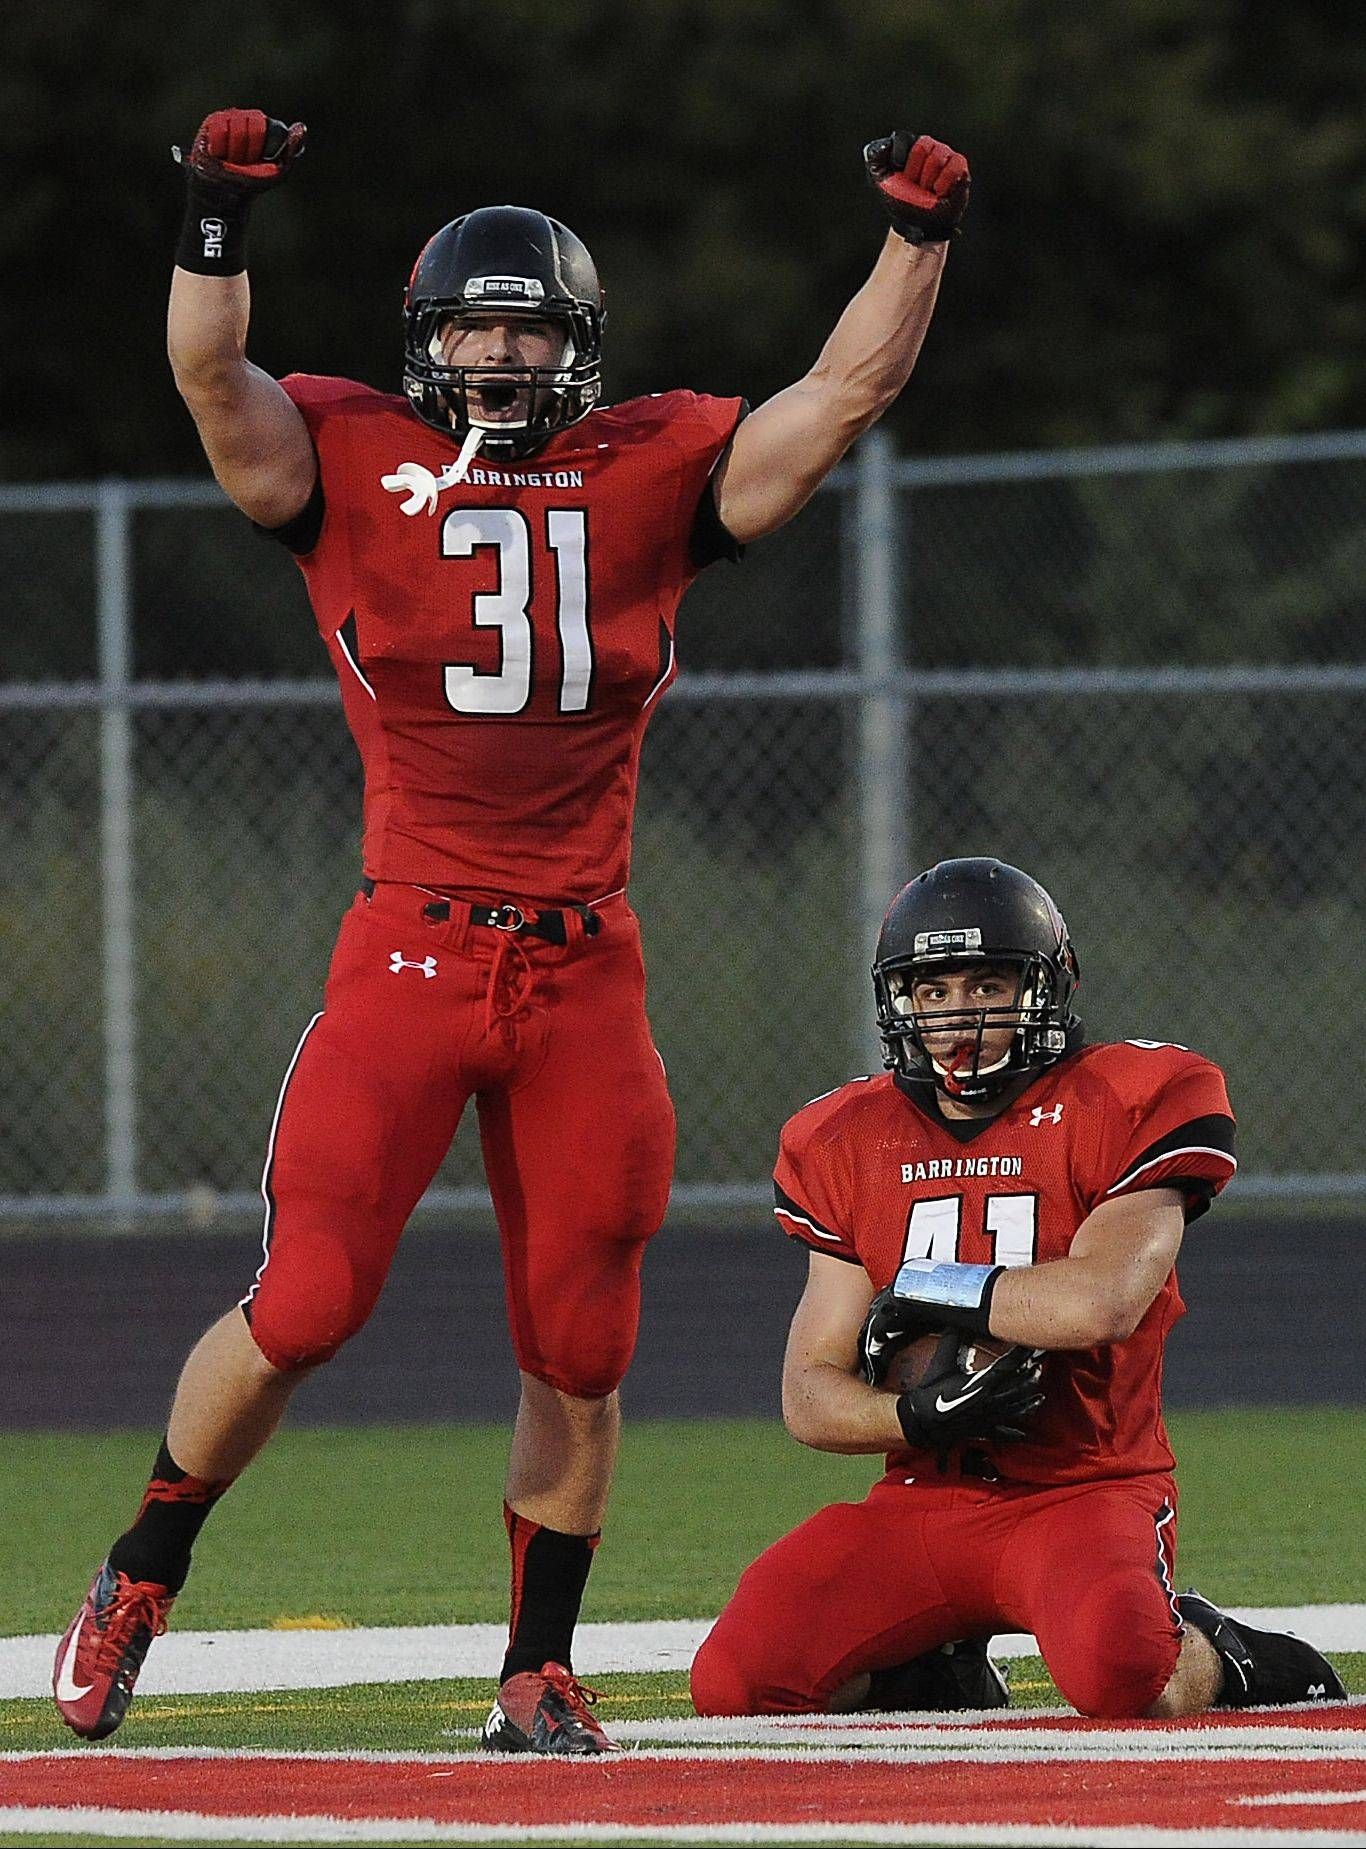 Barrington's Mark Bornhofen recovers a blocked punt for a touchdown as teammate Colin Castagna celebrates during Thursday's matchup against visiting Rolling Meadows.